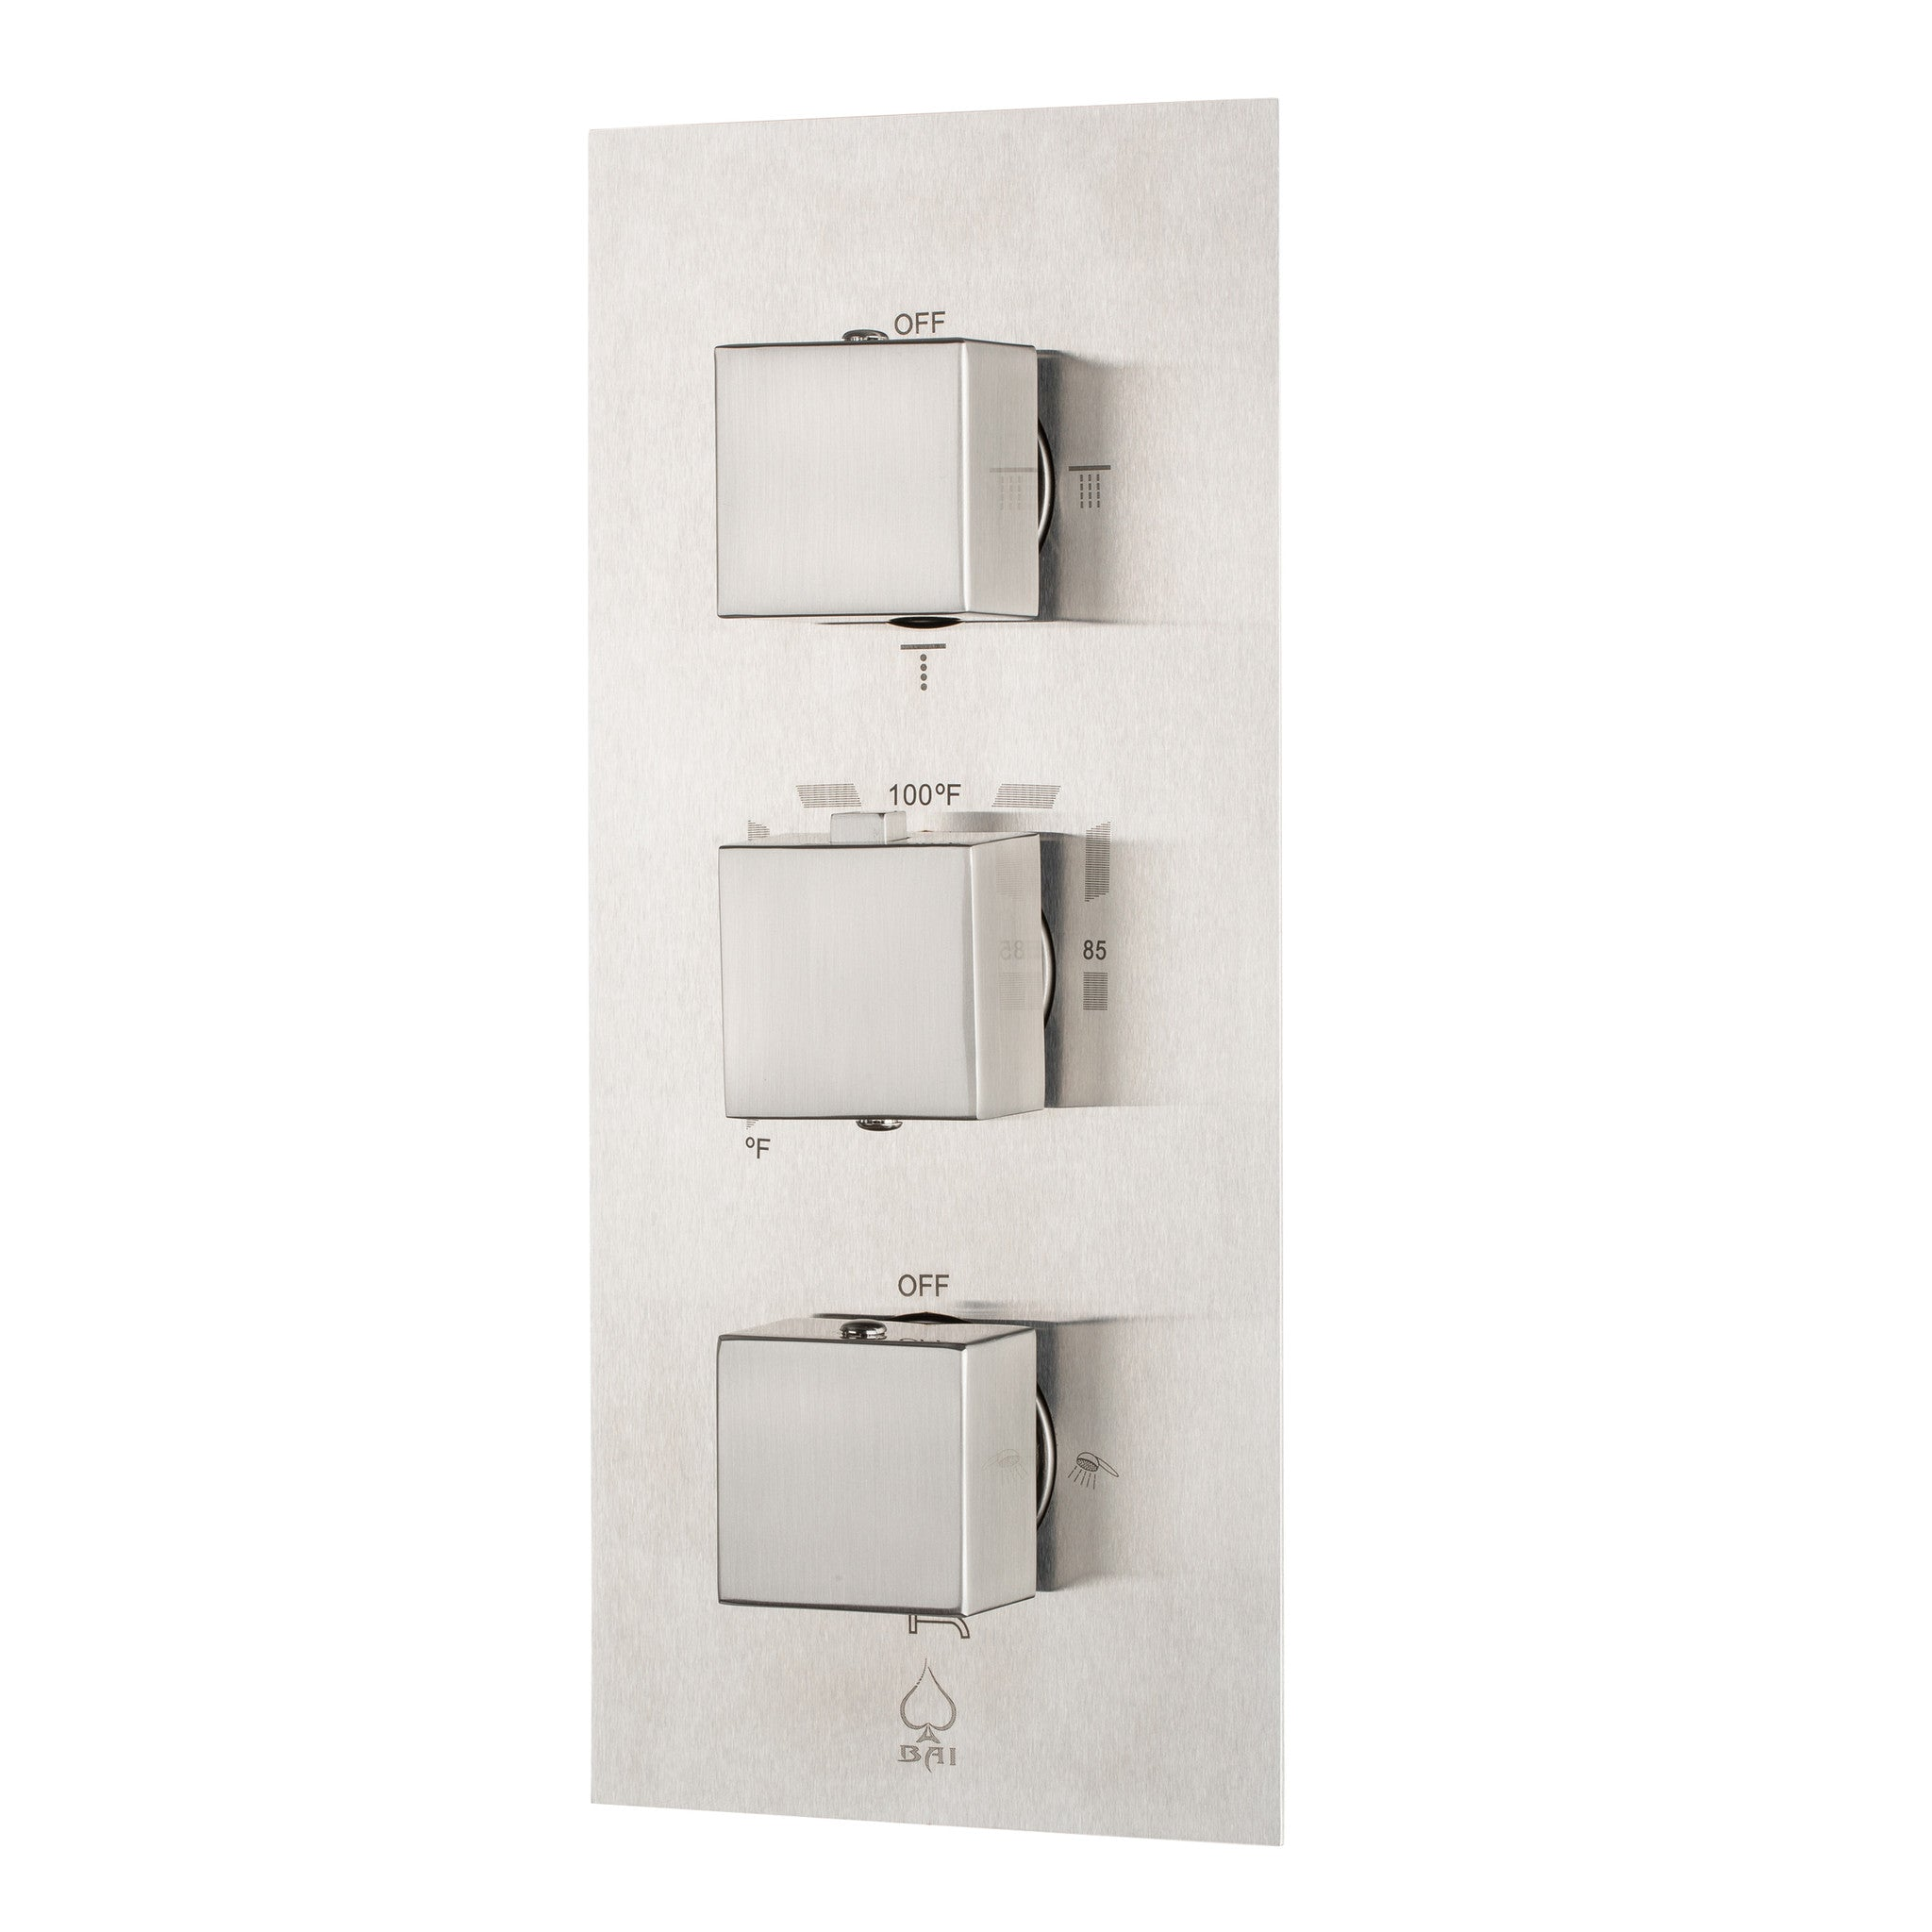 BAI 0125 Concealed Thermostatic Shower Mixer / Valve 4-6 Functions ...